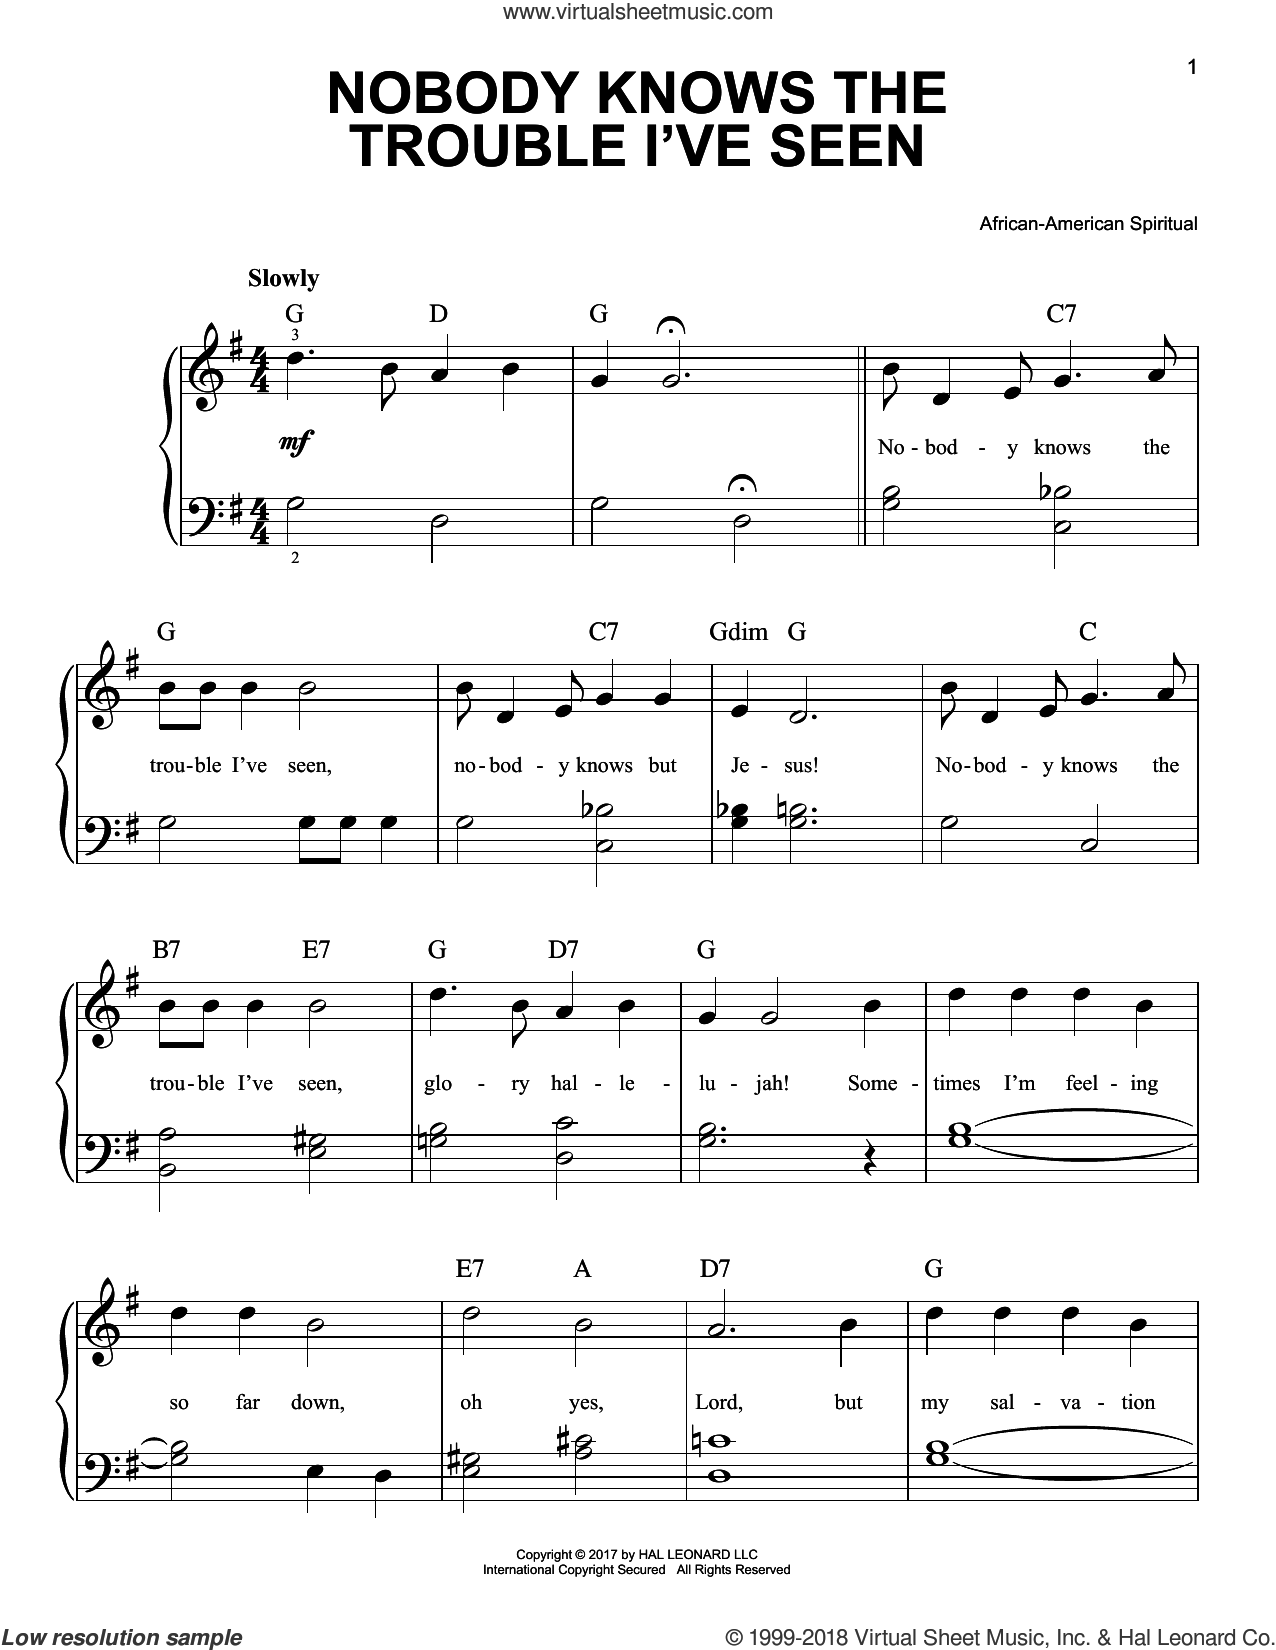 Nobody Knows The Trouble I've Seen sheet music for piano solo, beginner skill level